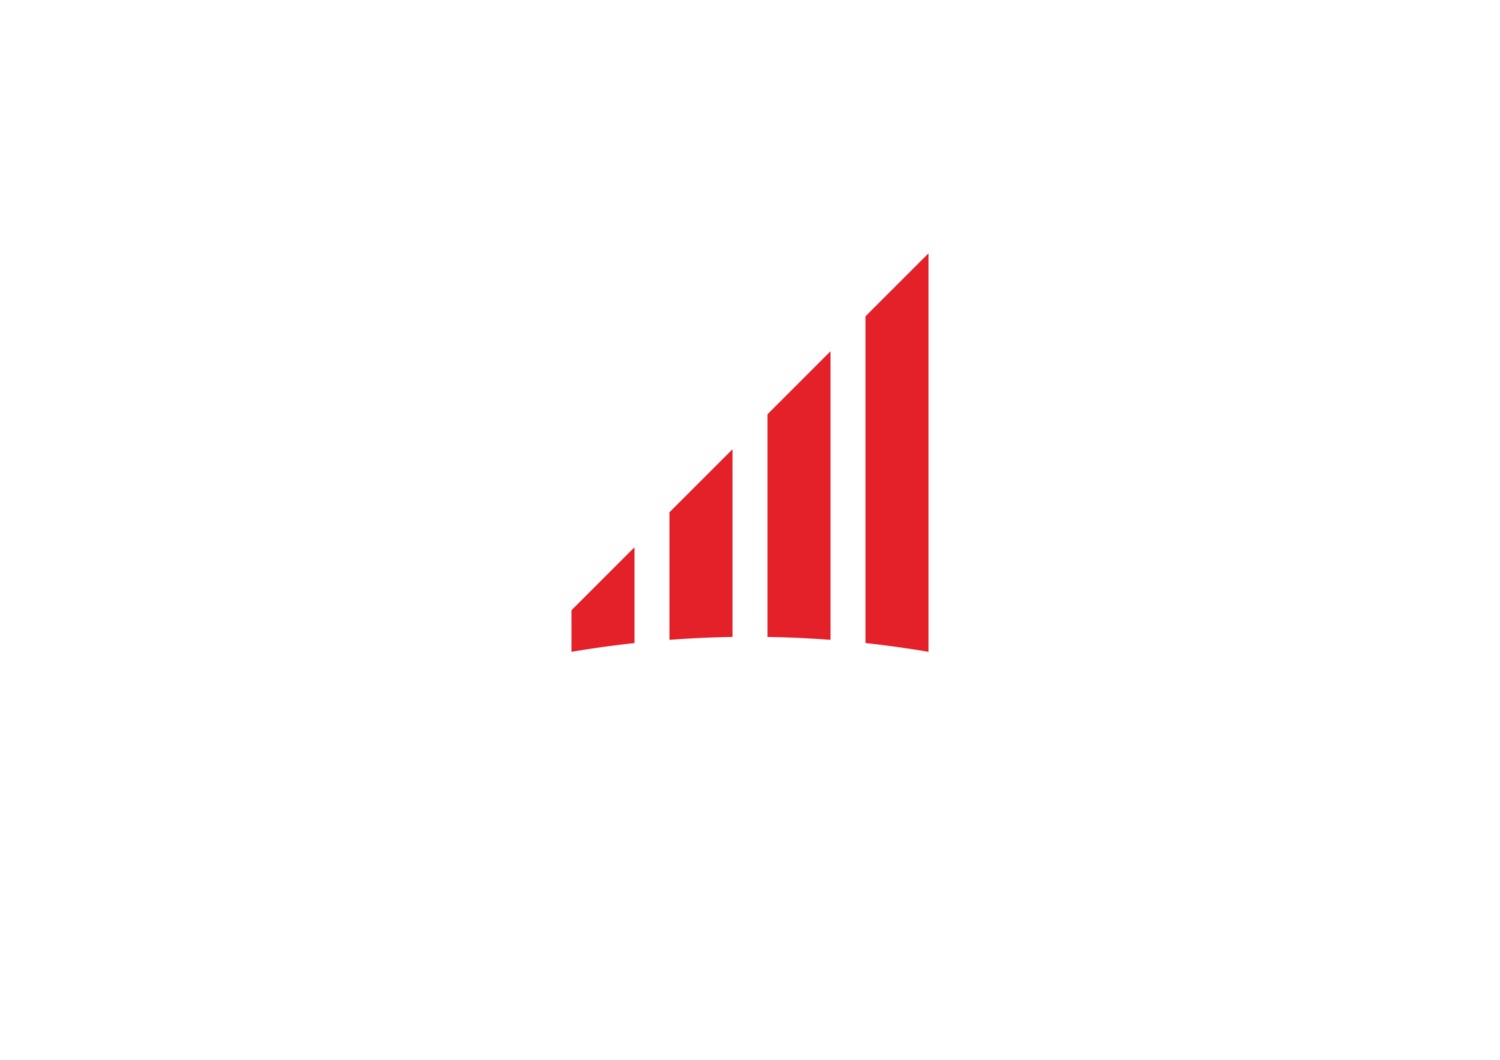 evolution industries